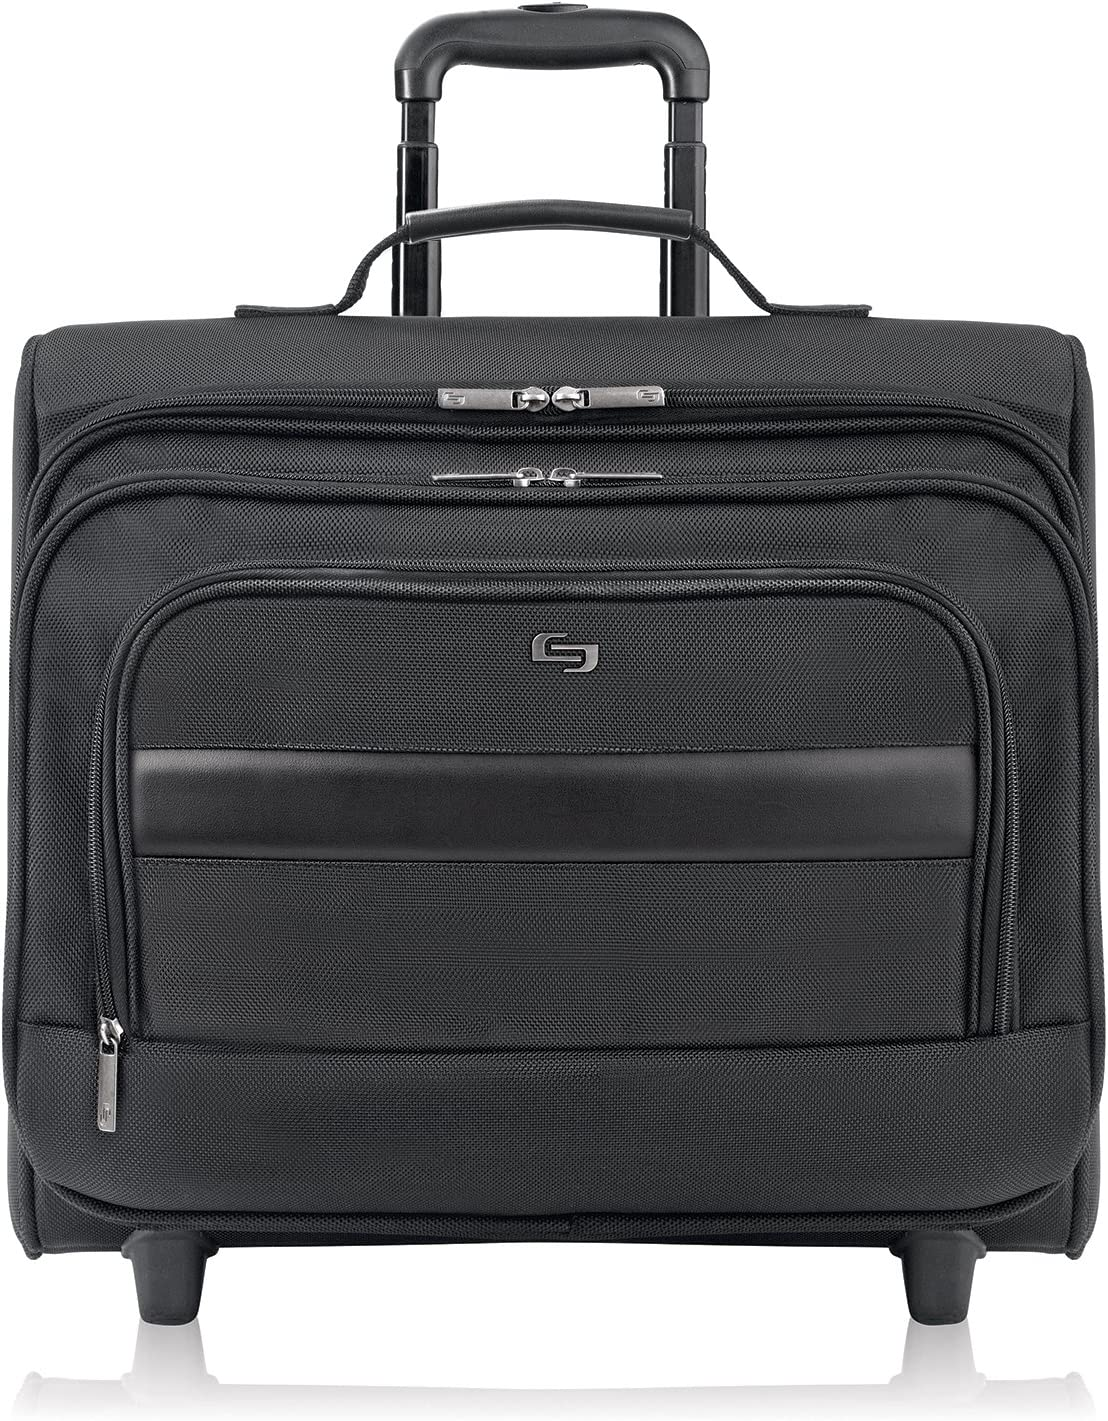 Solo New York Columbus Rolling Overnight Laptop Bag. Rolling Laptop Overnighter Case with Removable Sleeve fits up 15.6 inch laptop - Black